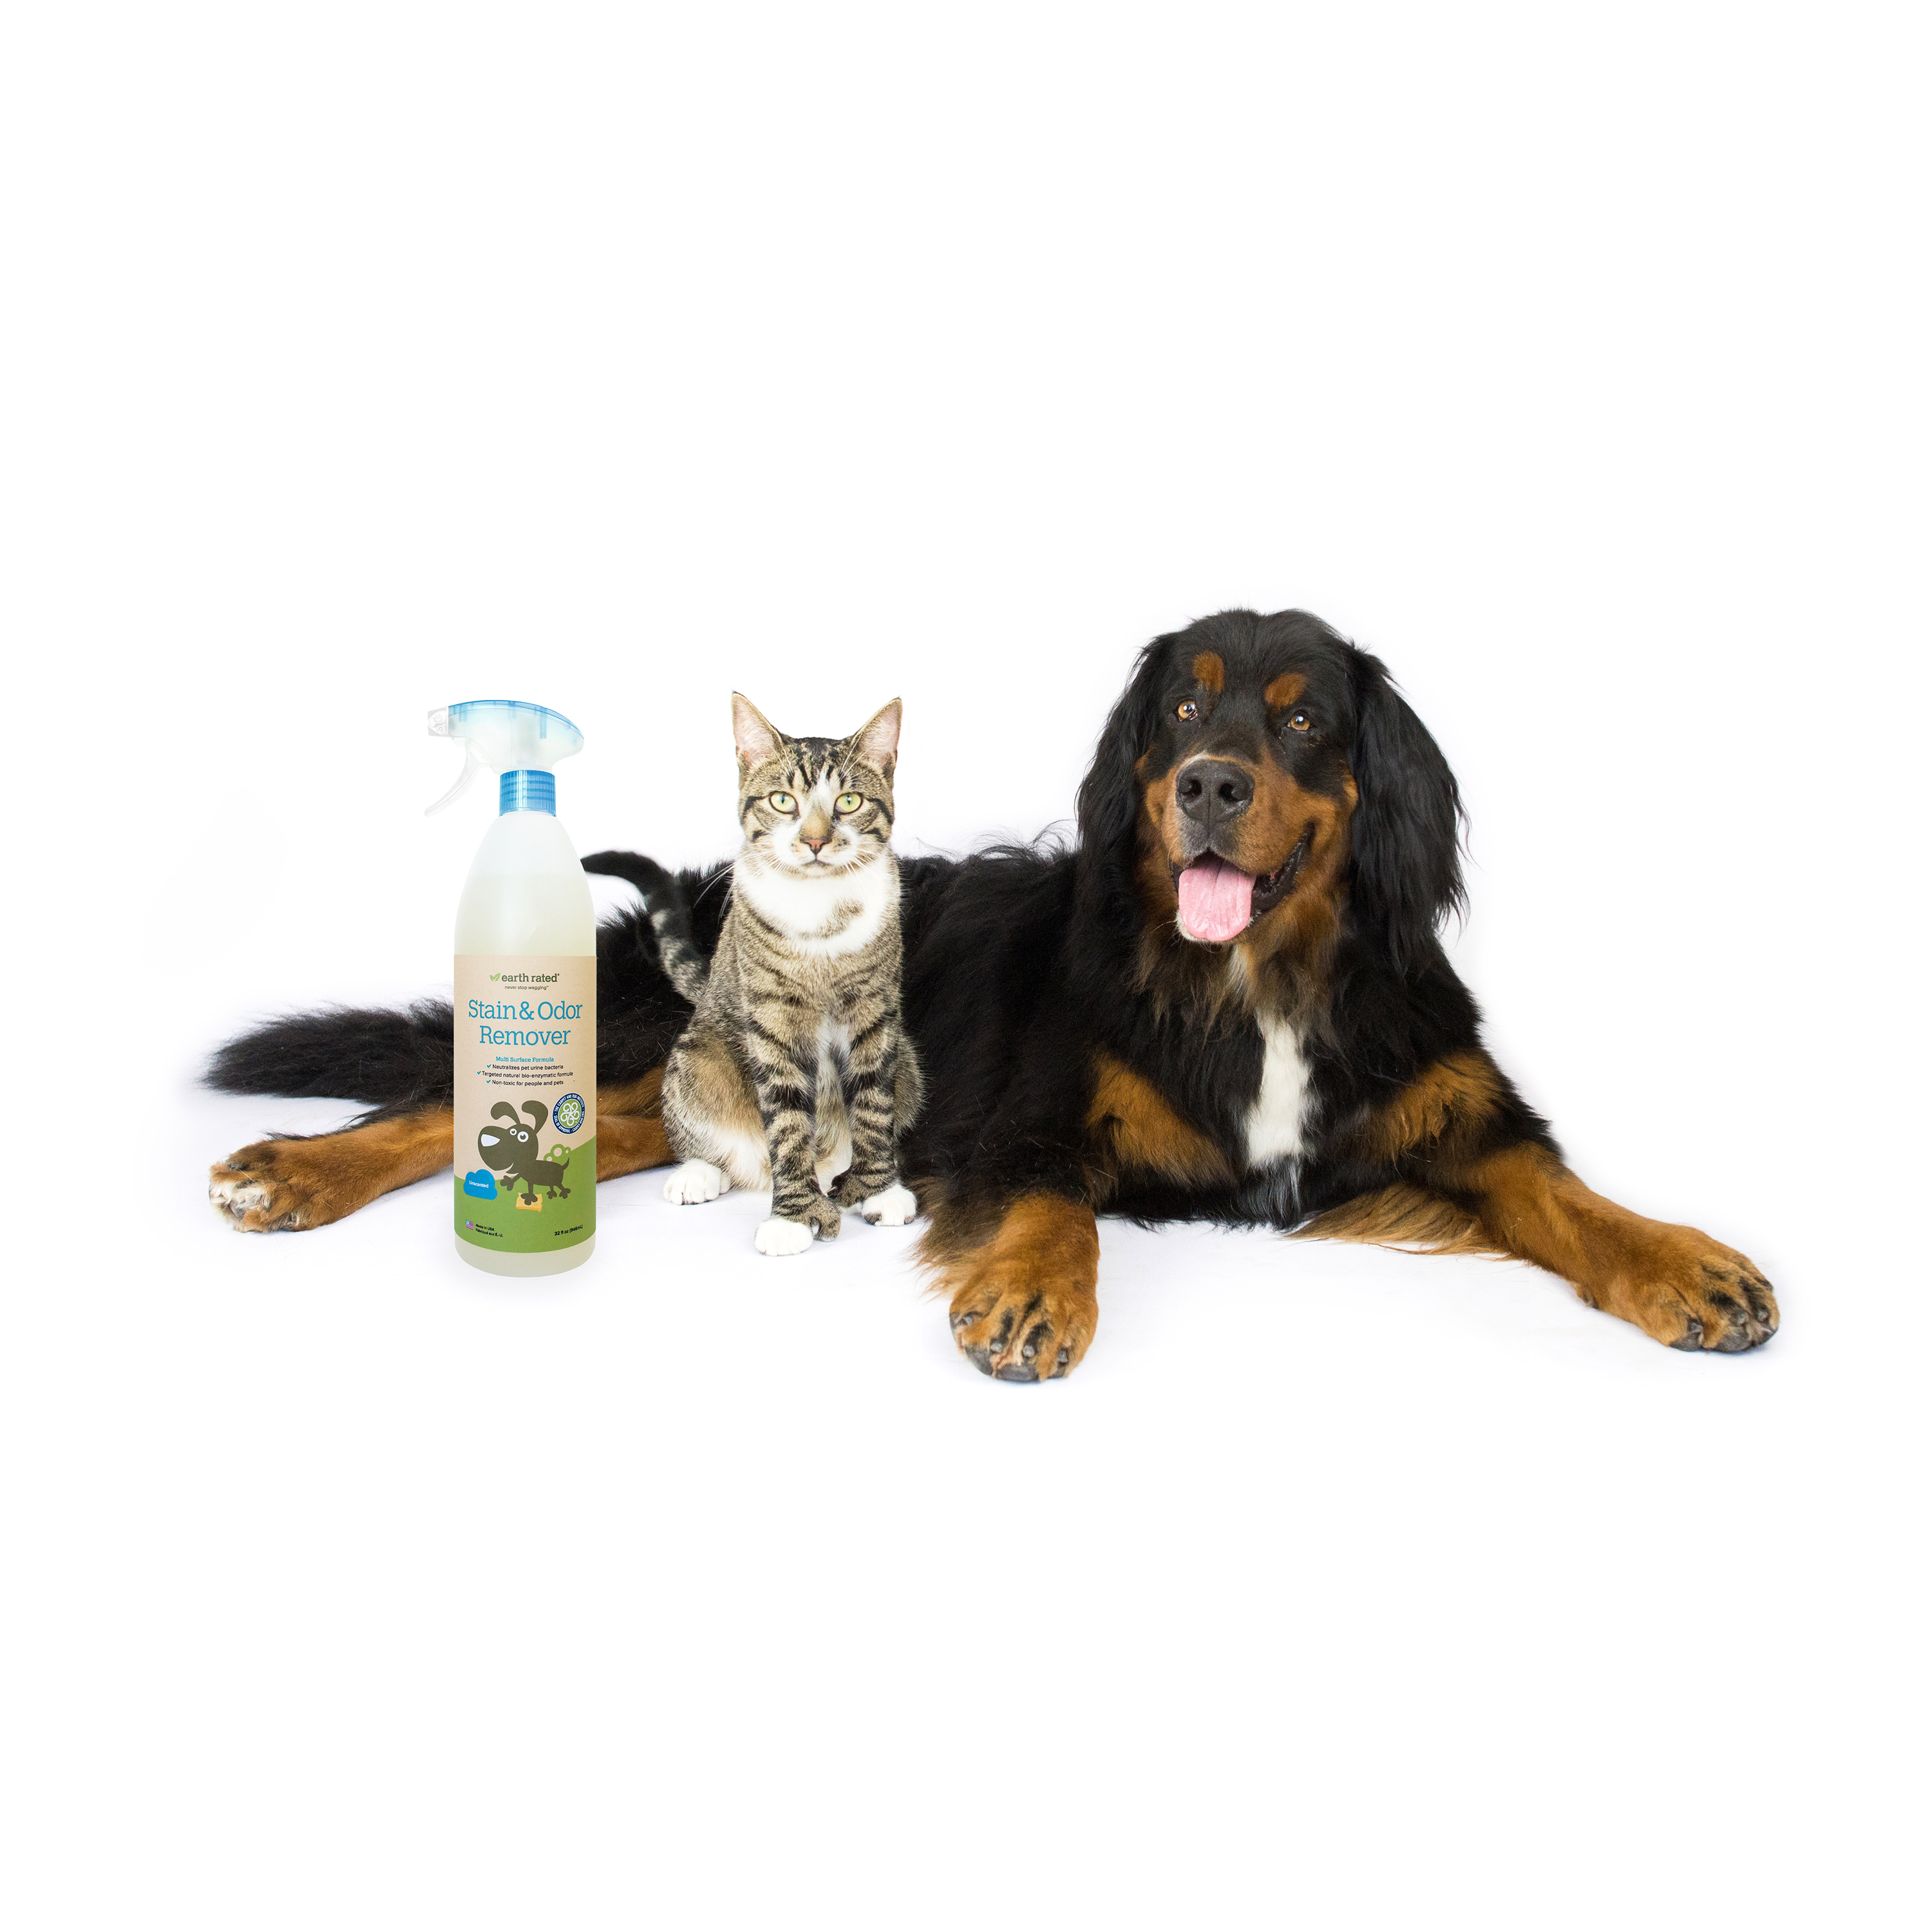 Pet Stain and Oder remover